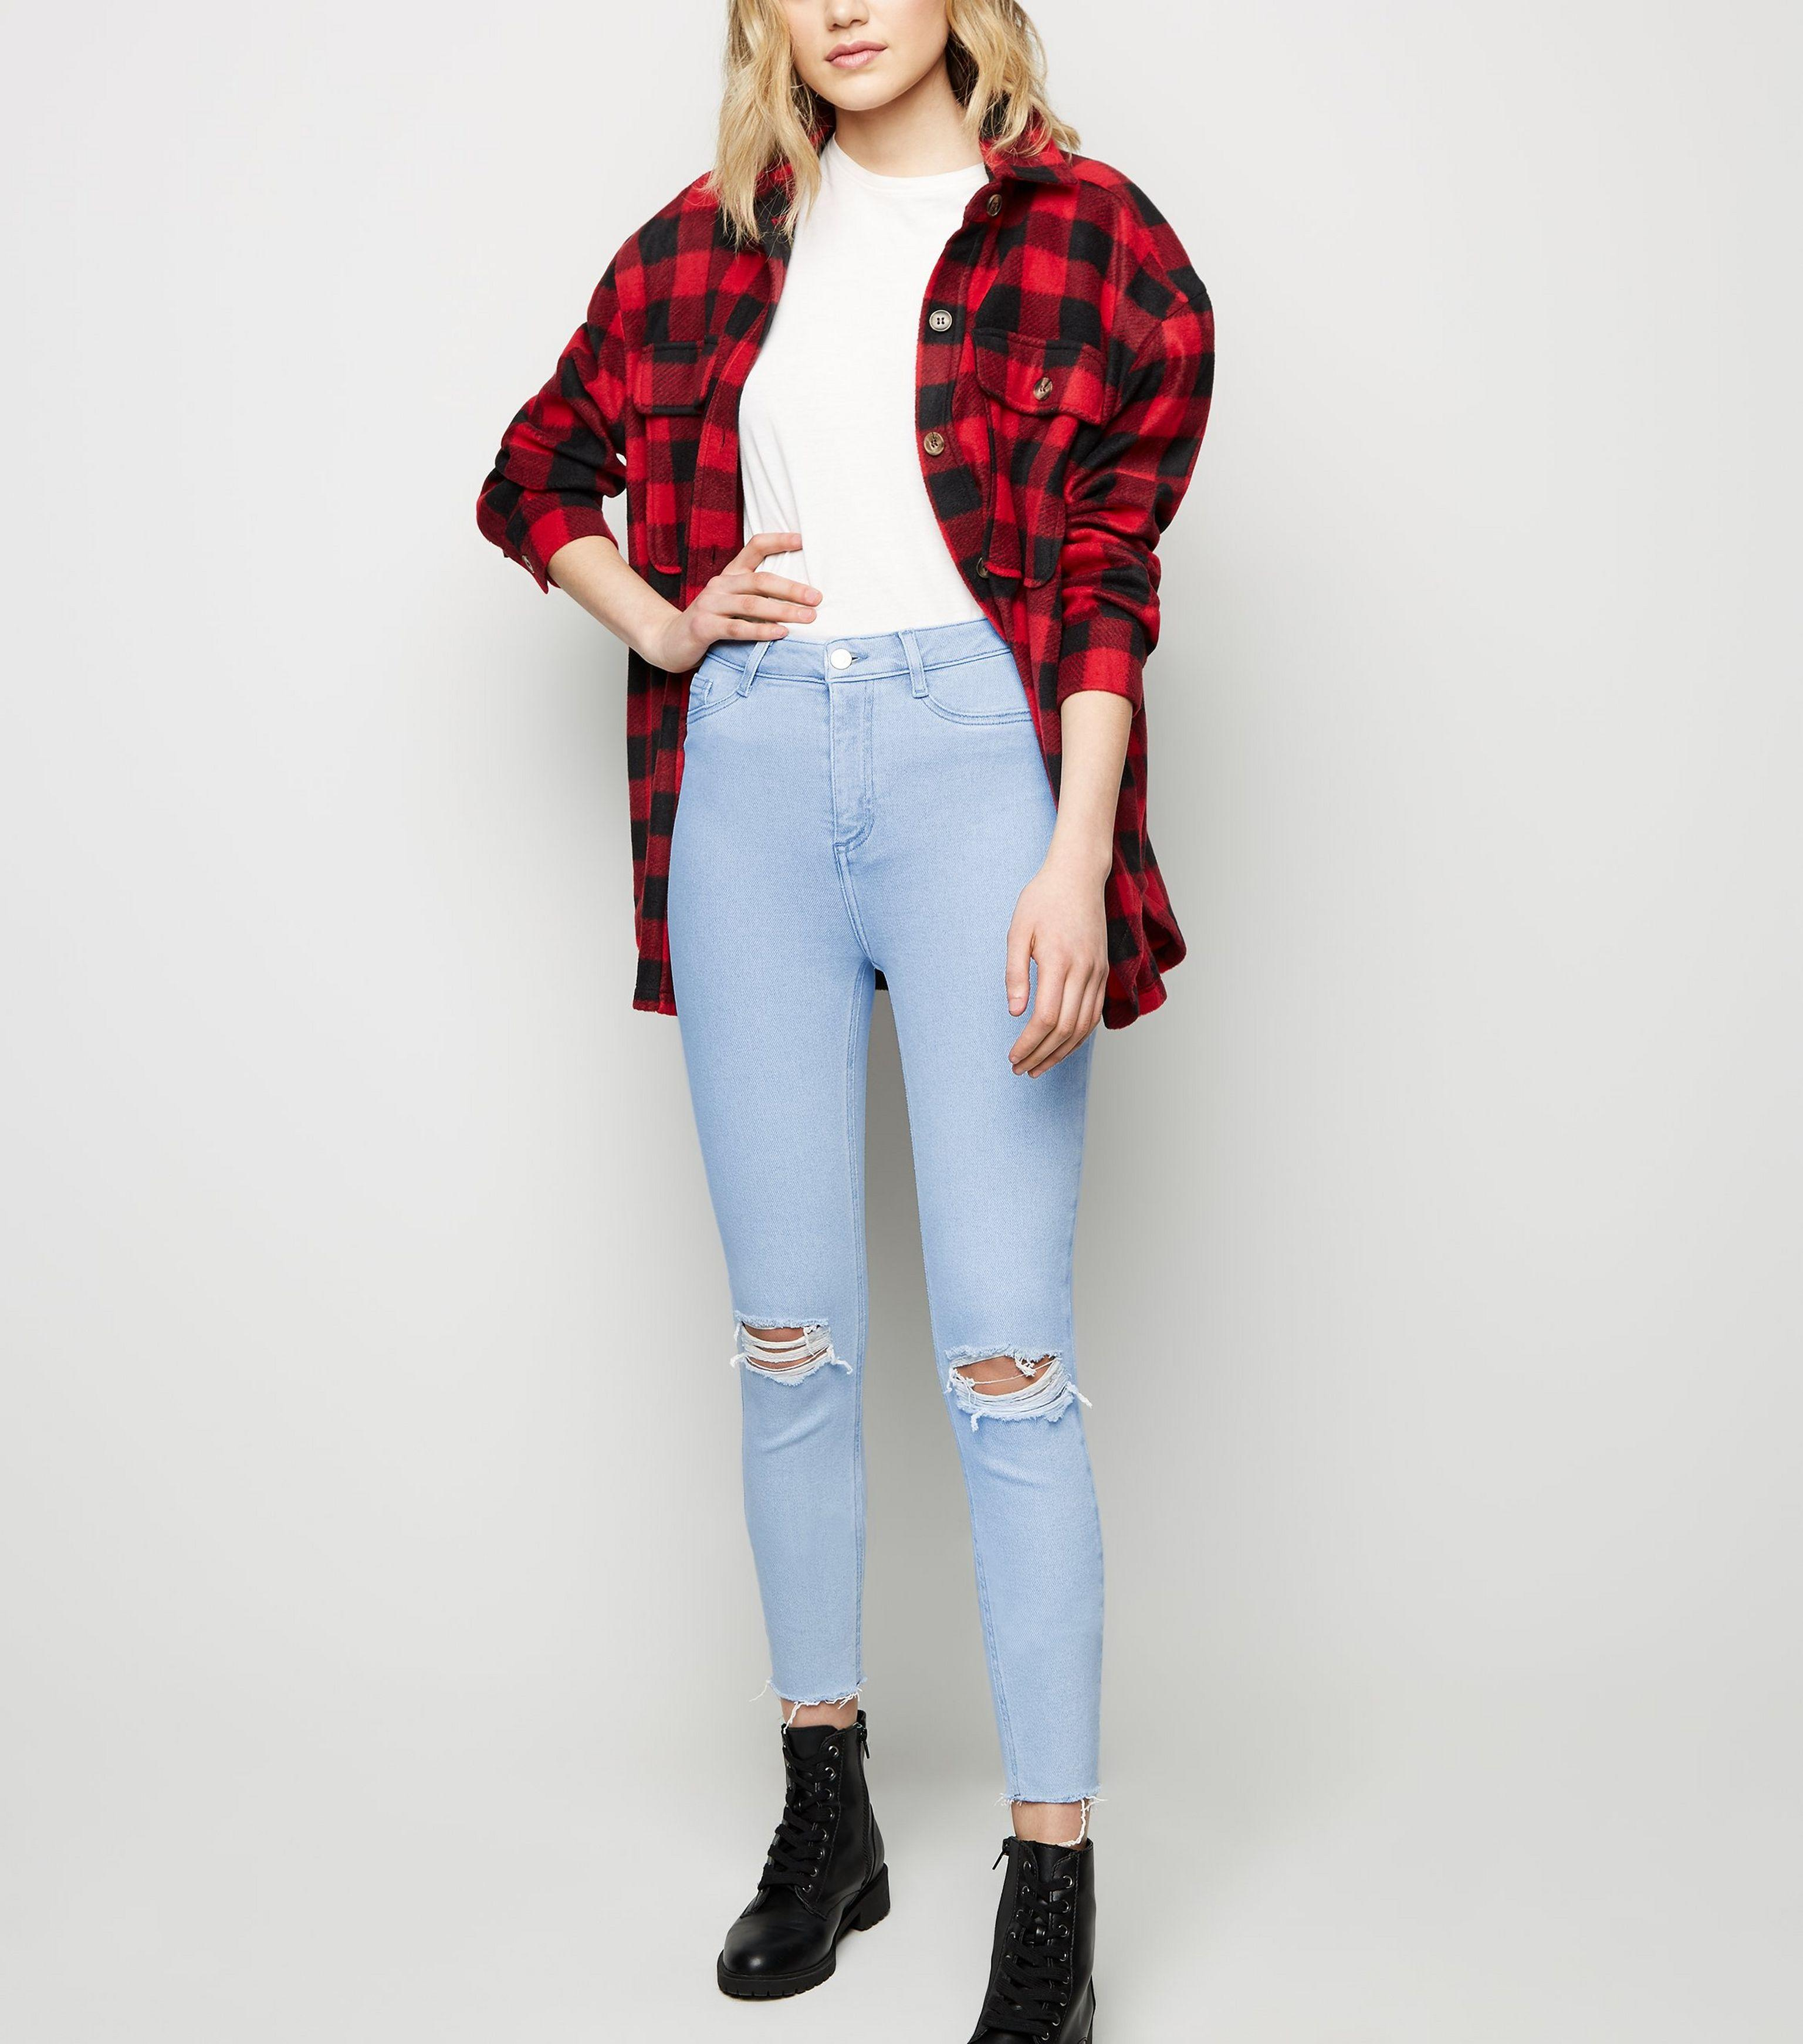 28d3987efd771 New Look. Women's Bright Blue High Waist Super Skinny Ripped Hallie Jeans